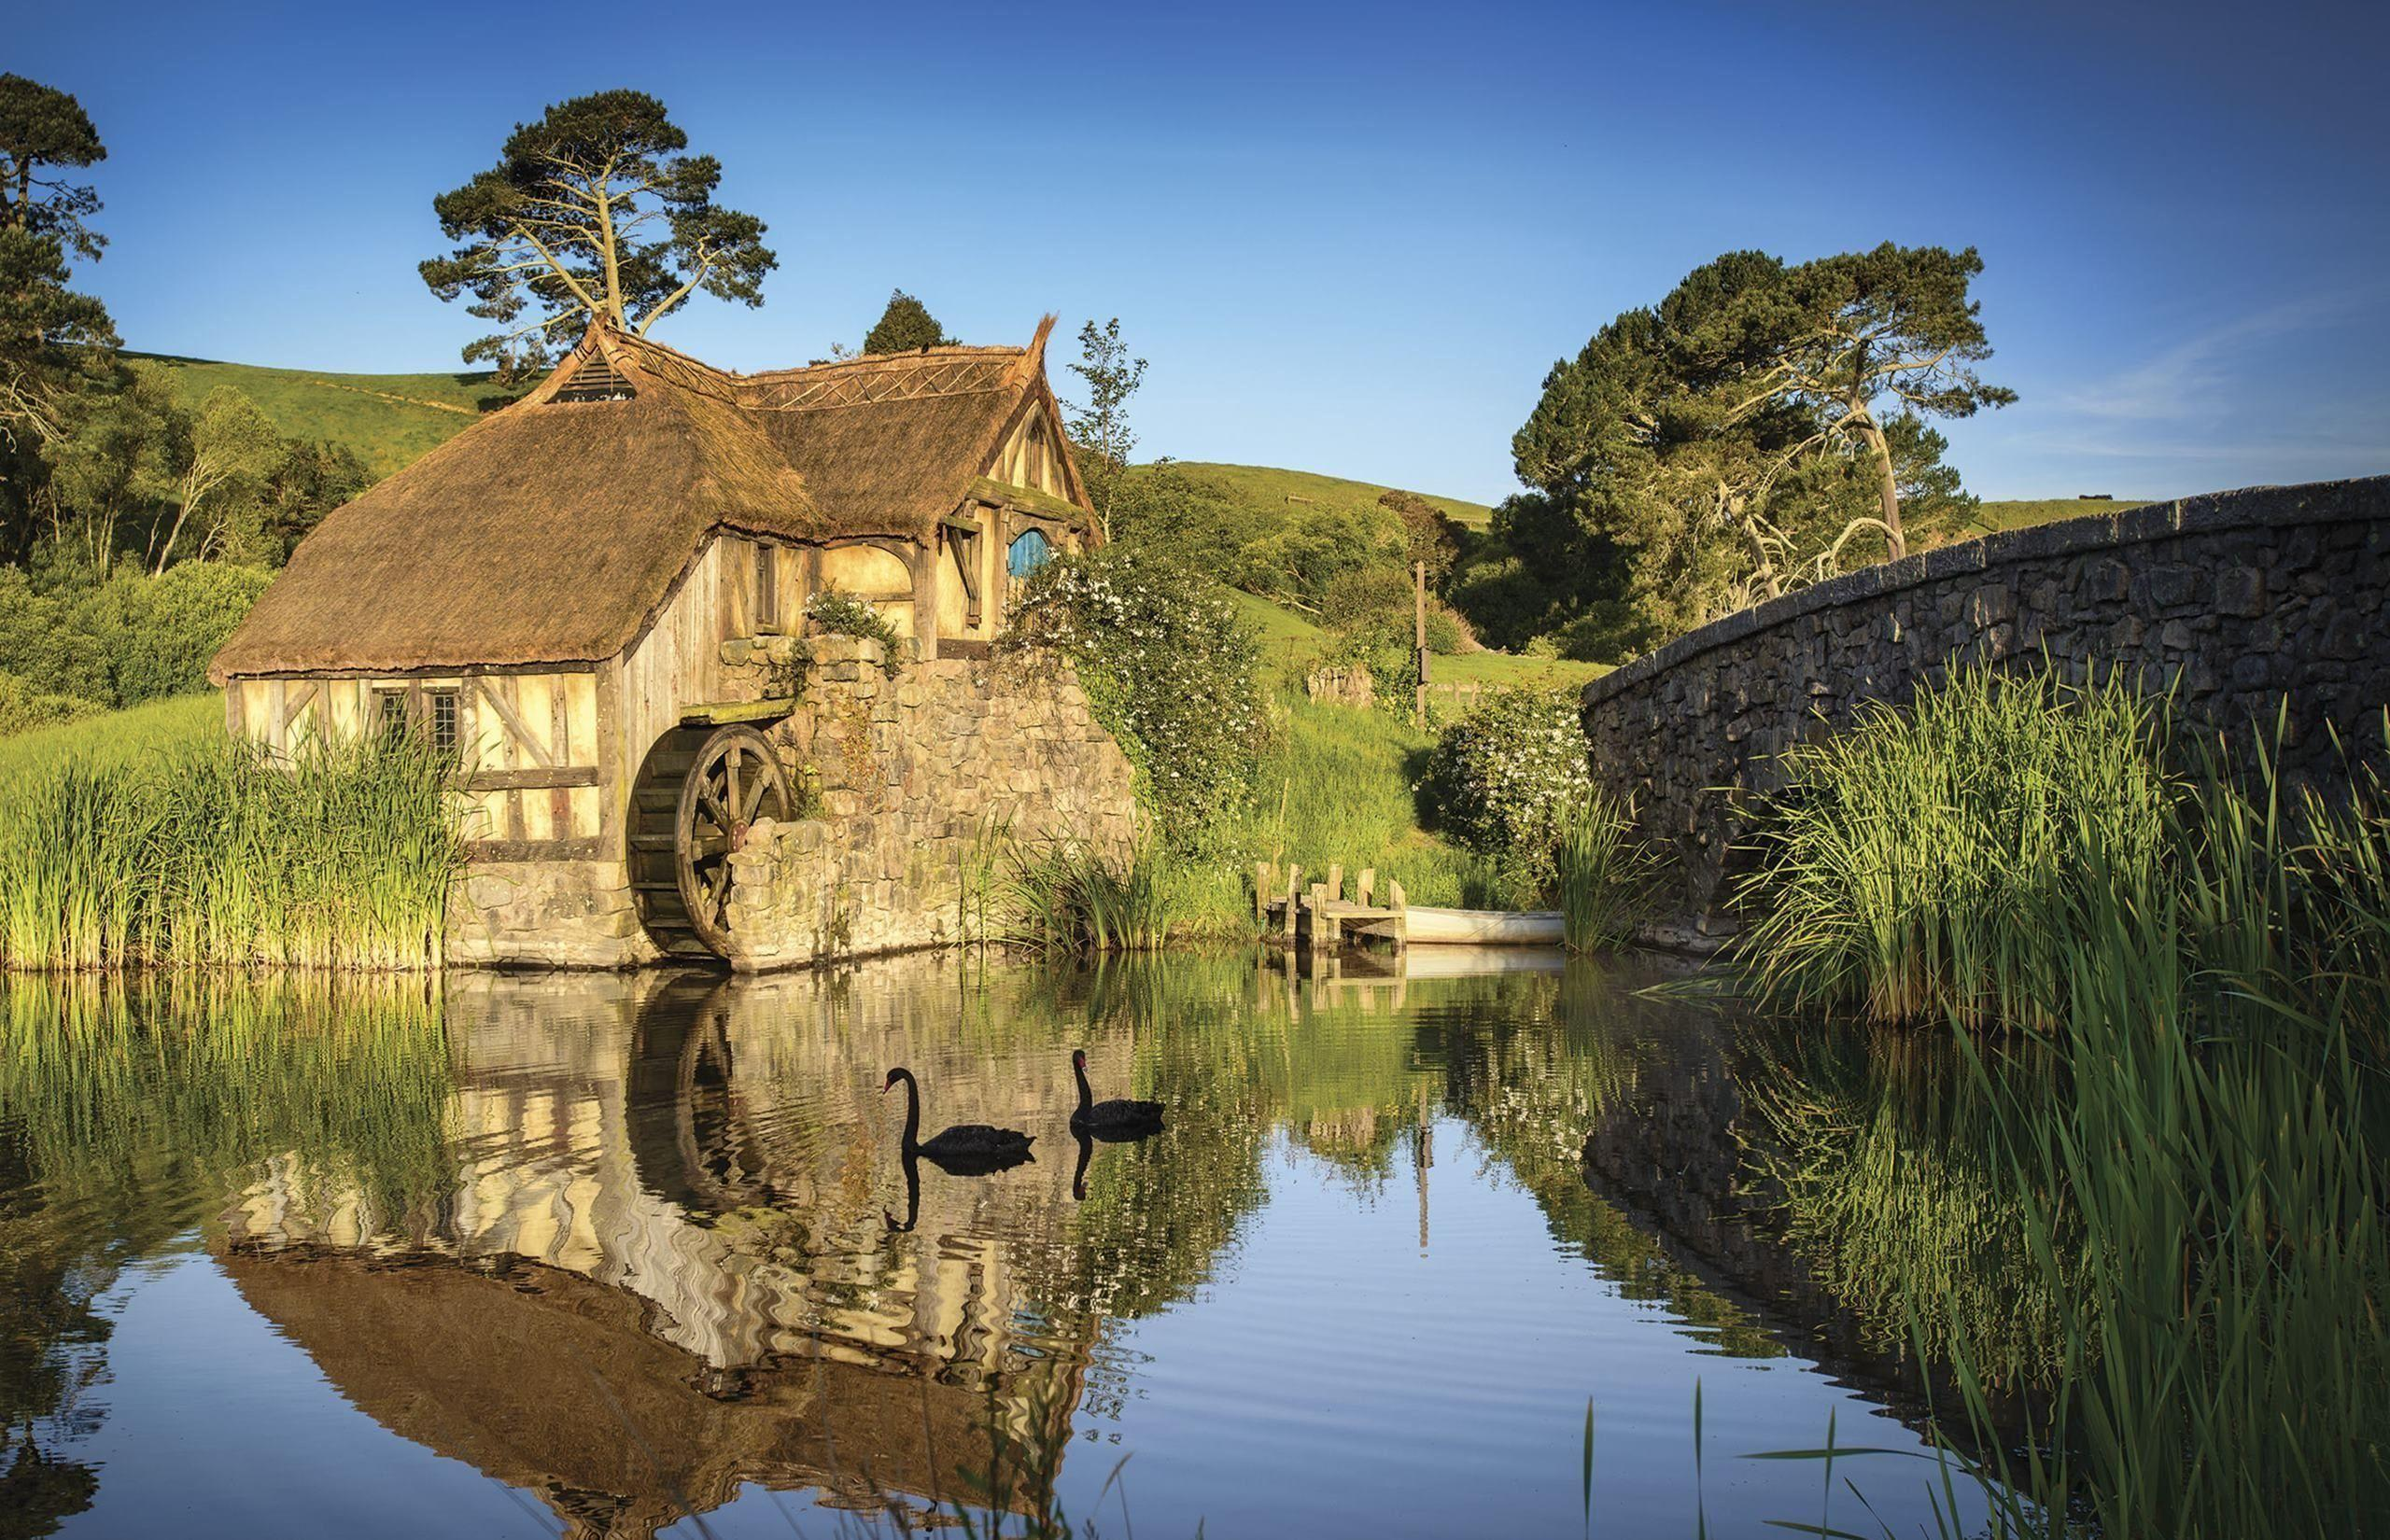 Download wallpapers fabulous park, hobbiton, new zealand for desktop